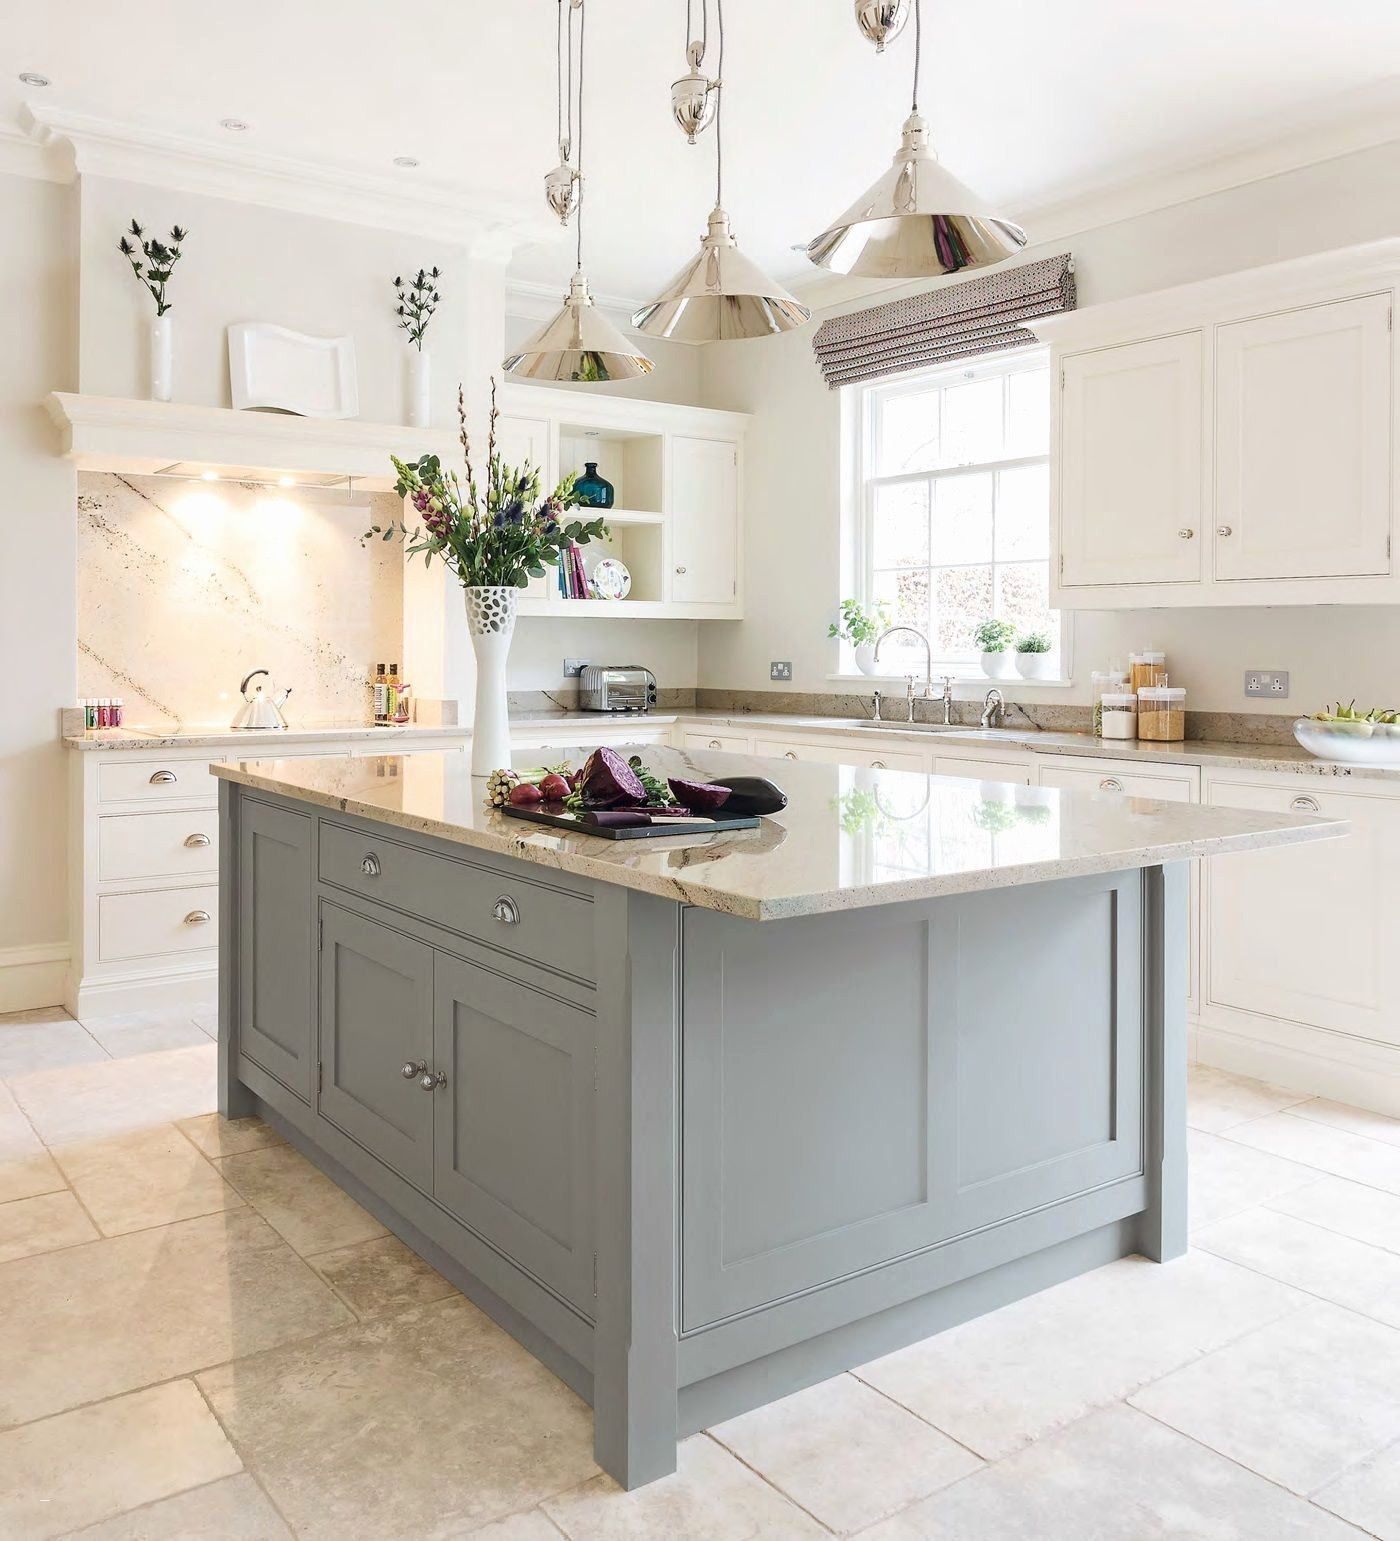 New Kitchen Peninsula (With images) White